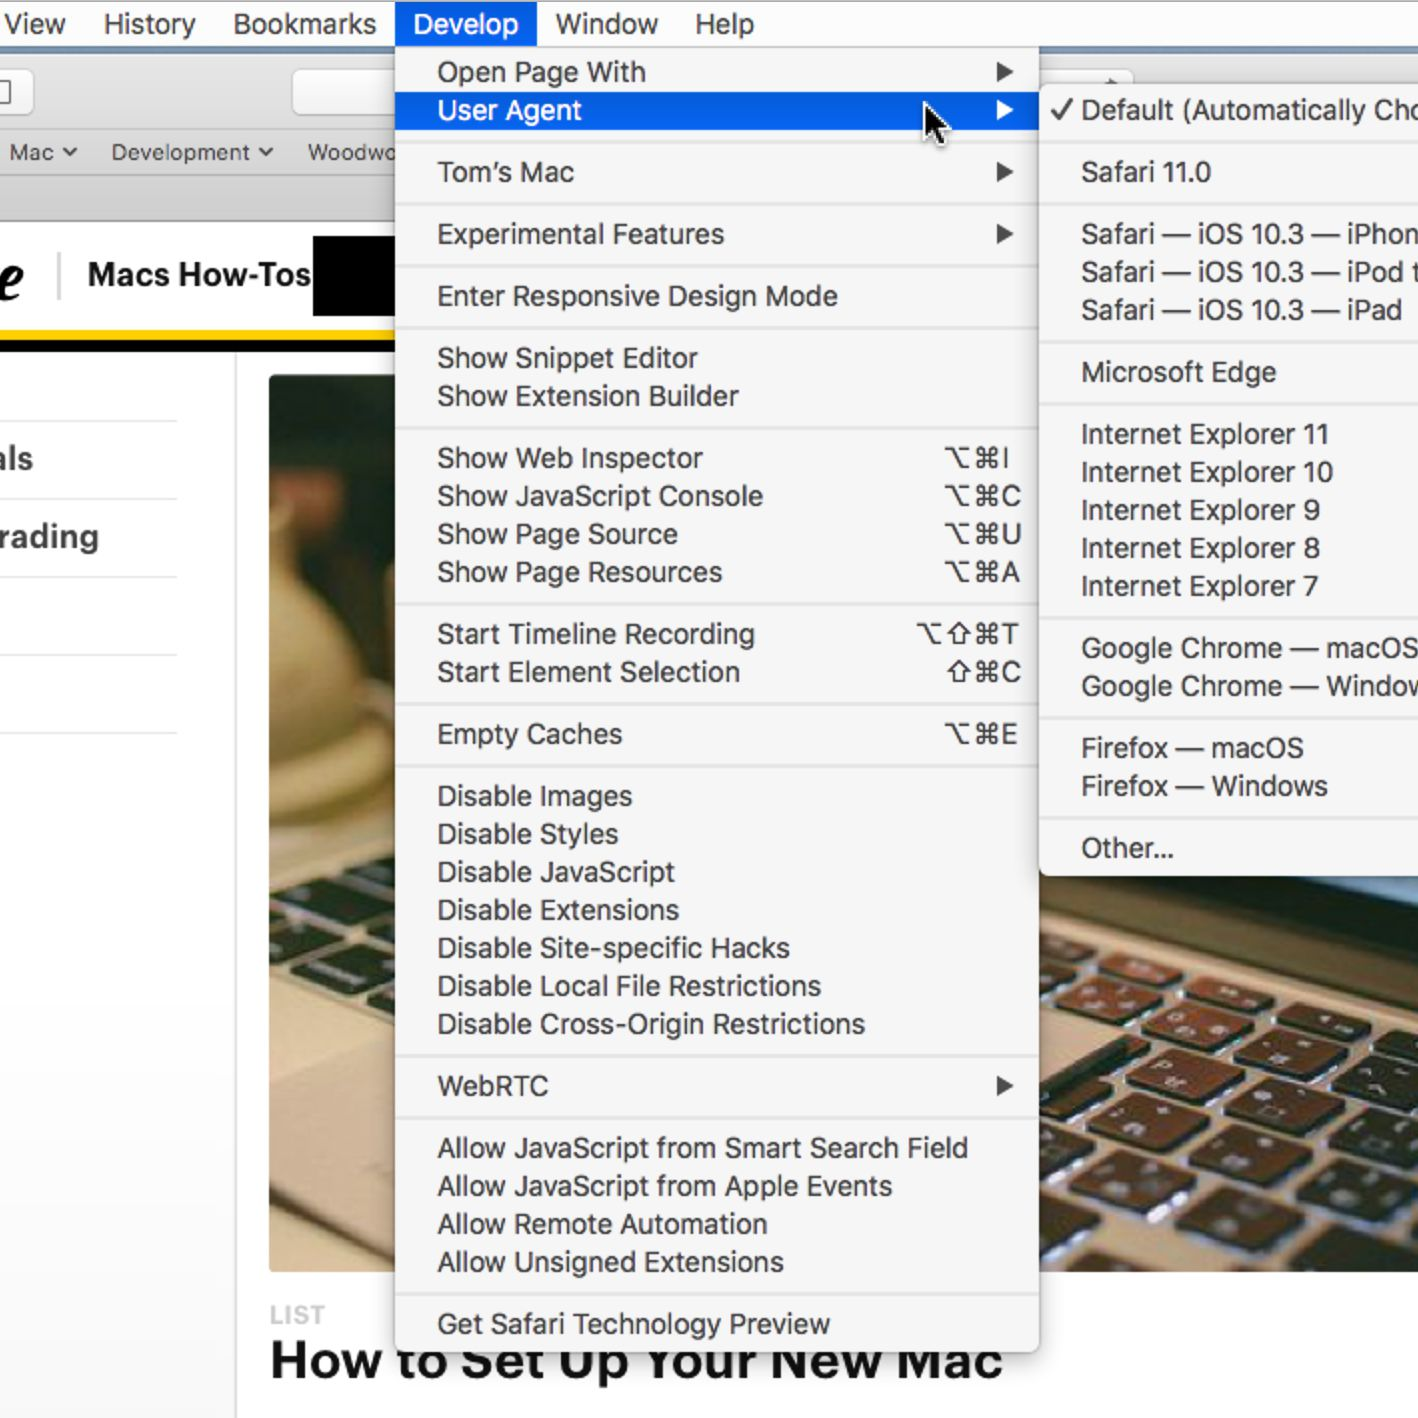 Add More Features by Enabling Safari's Develop Menu